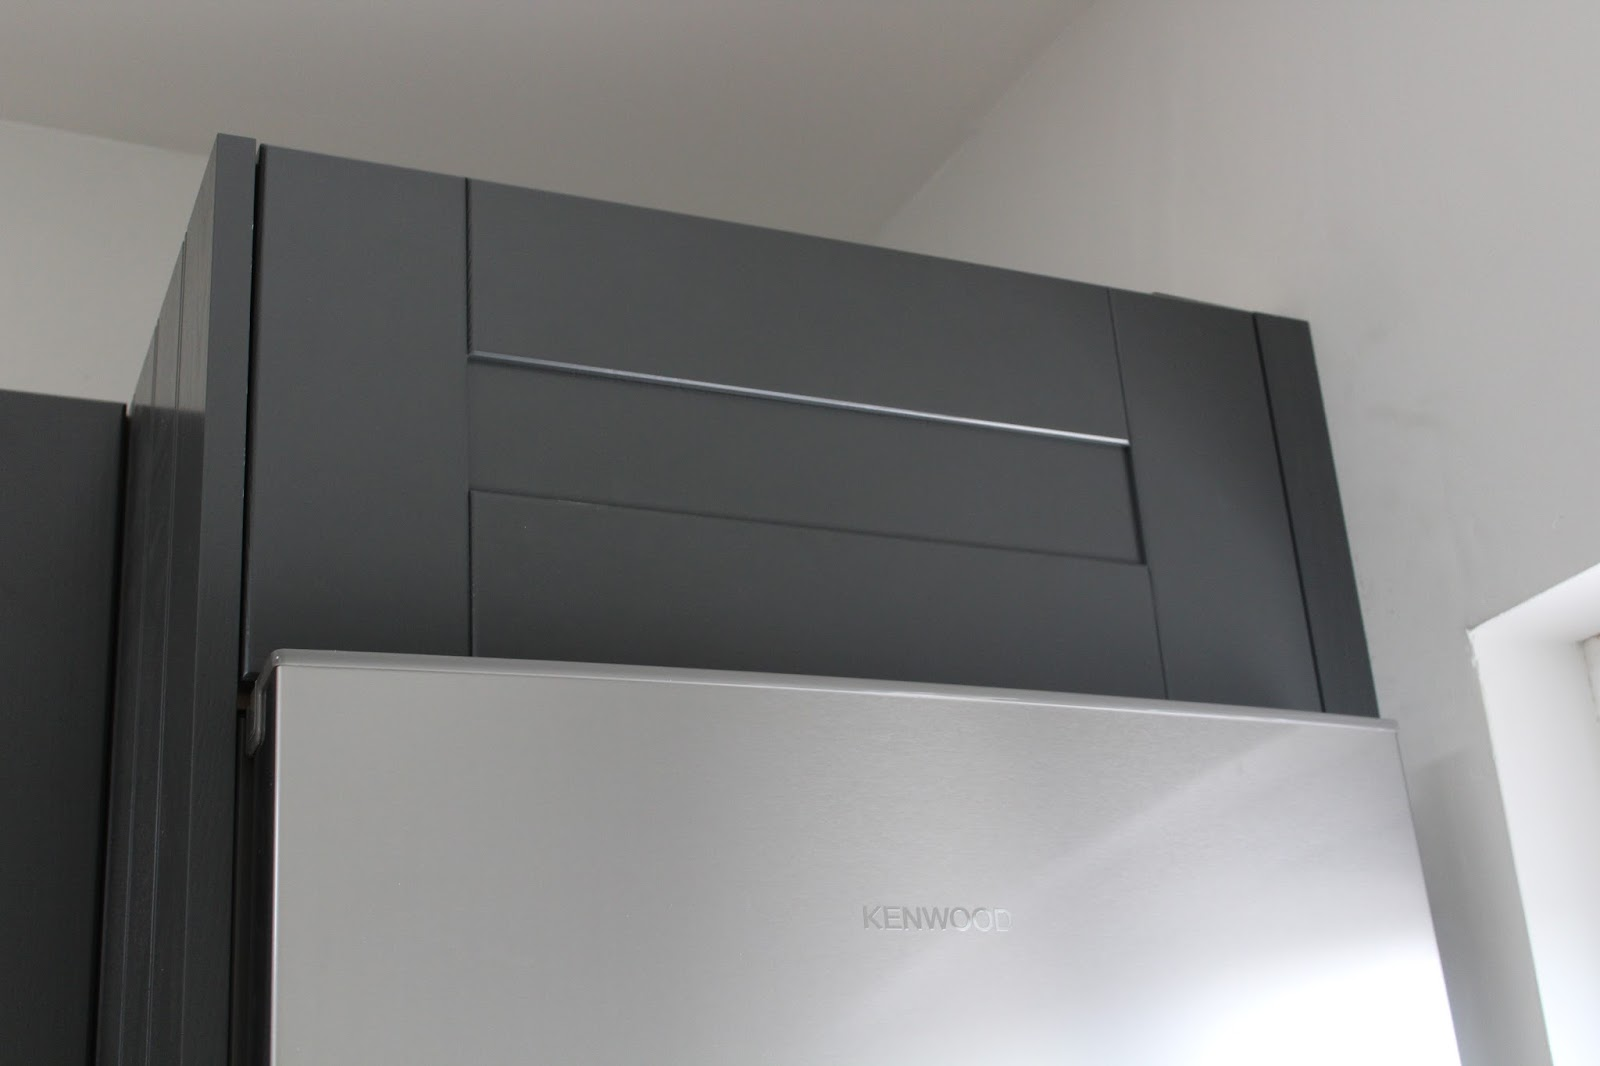 top box over fridge freezer to appear boxed in